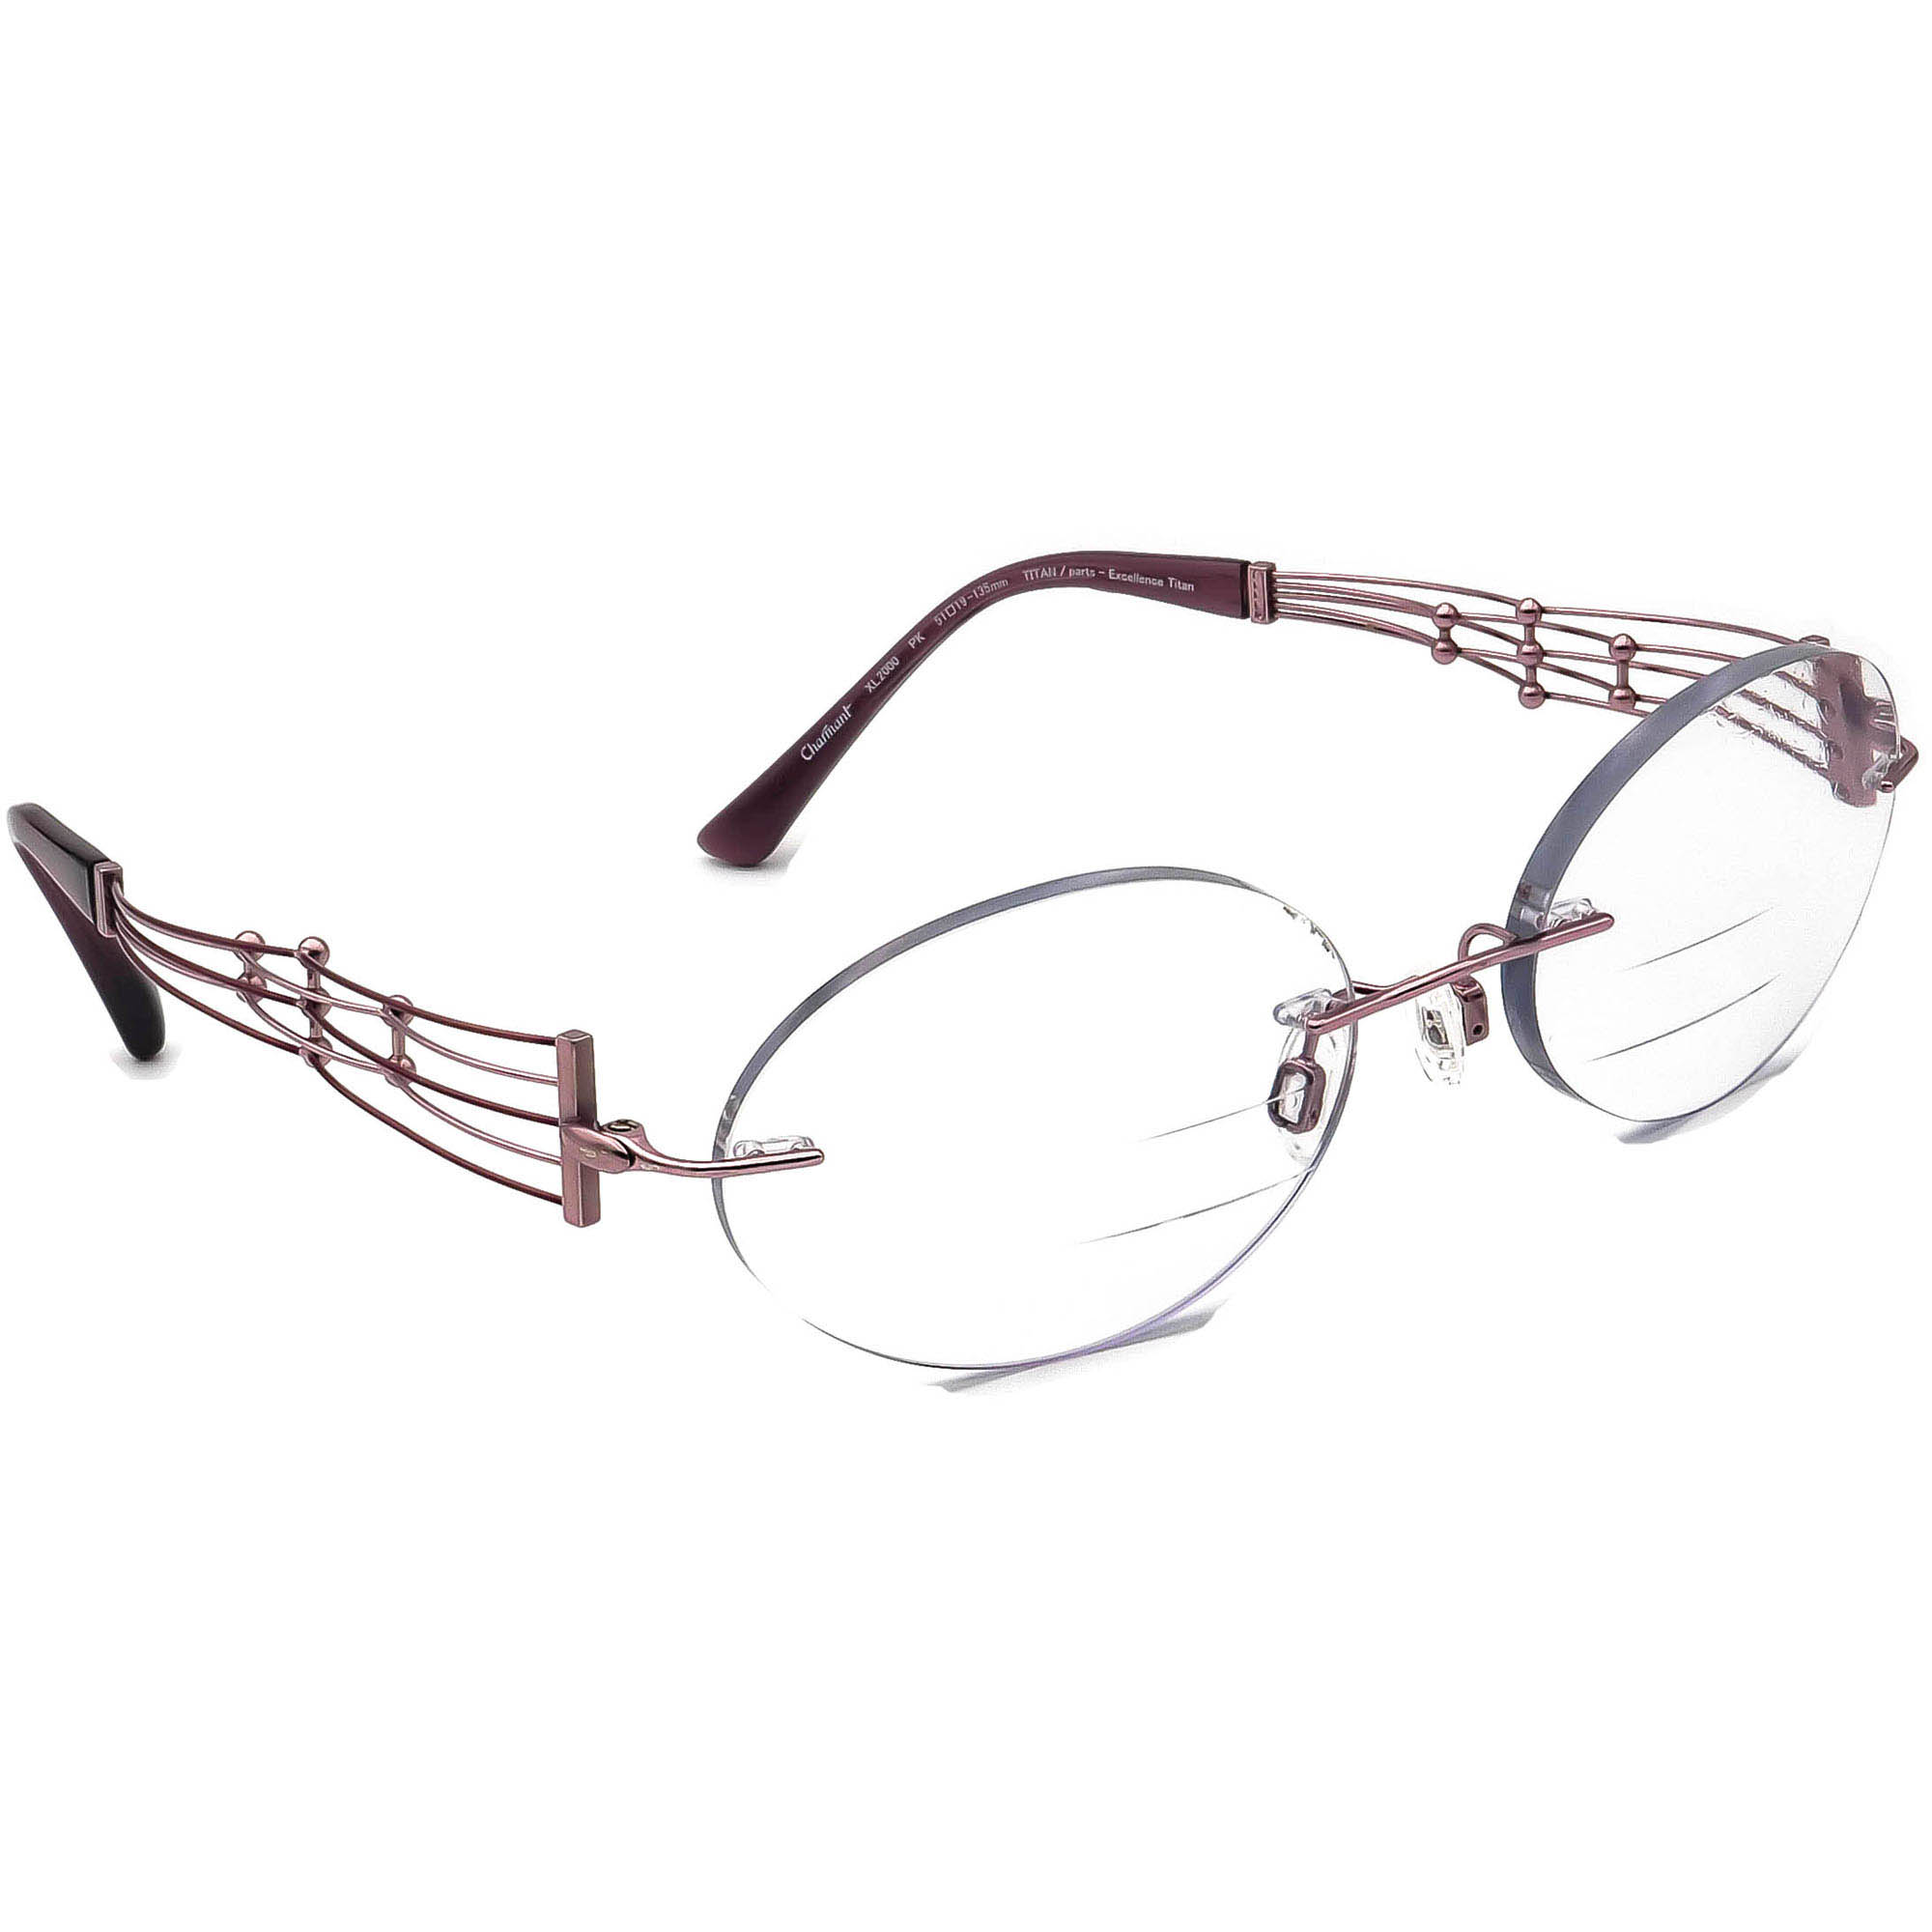 Charmant XL 2000 PK Titan Eyeglasses